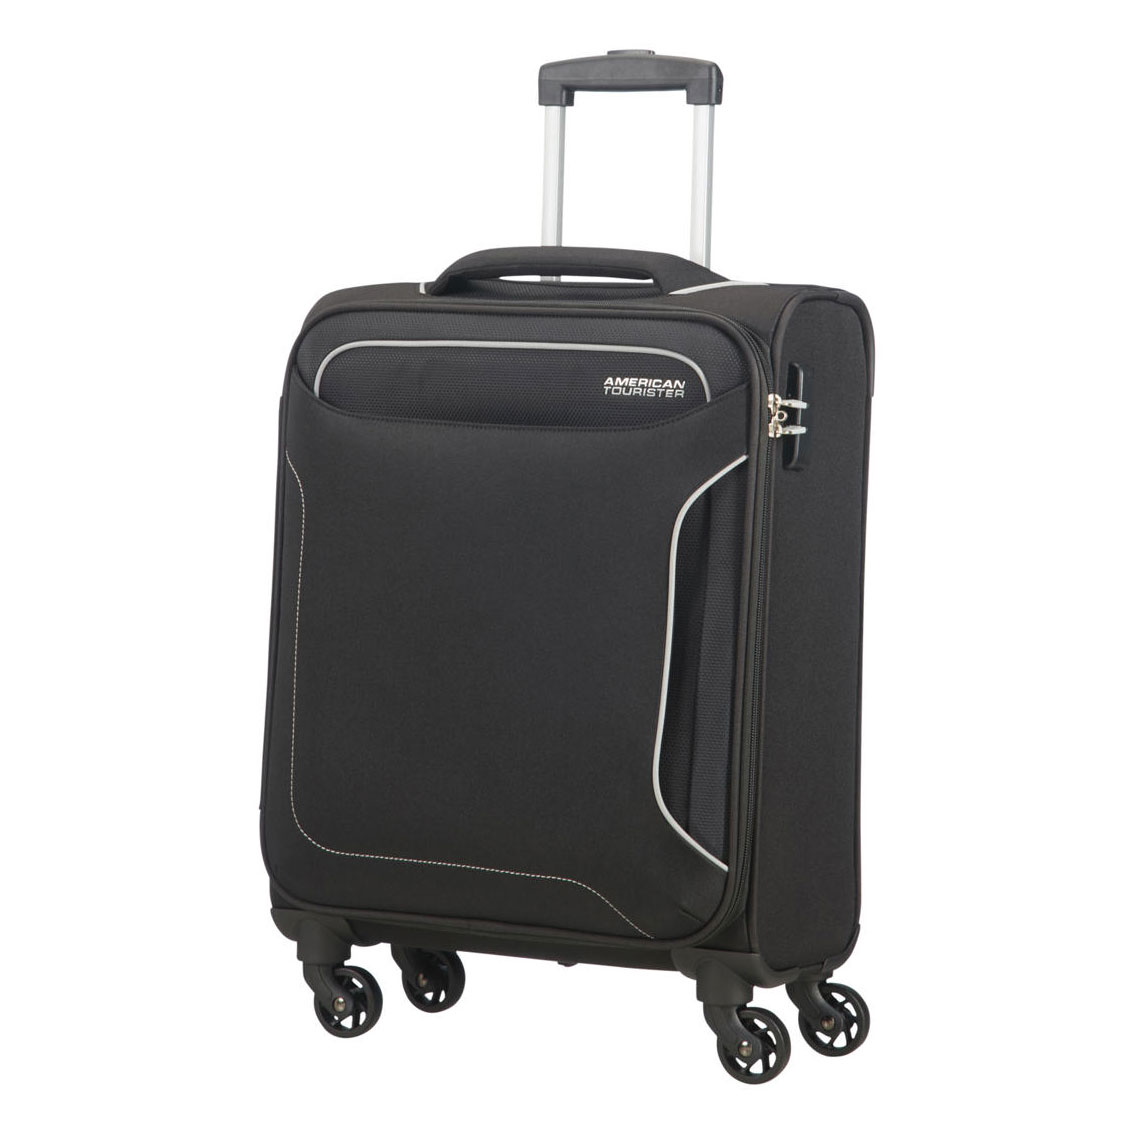 on bags trolleys shop luggage other brics en brown cabin cabins bric carry s view